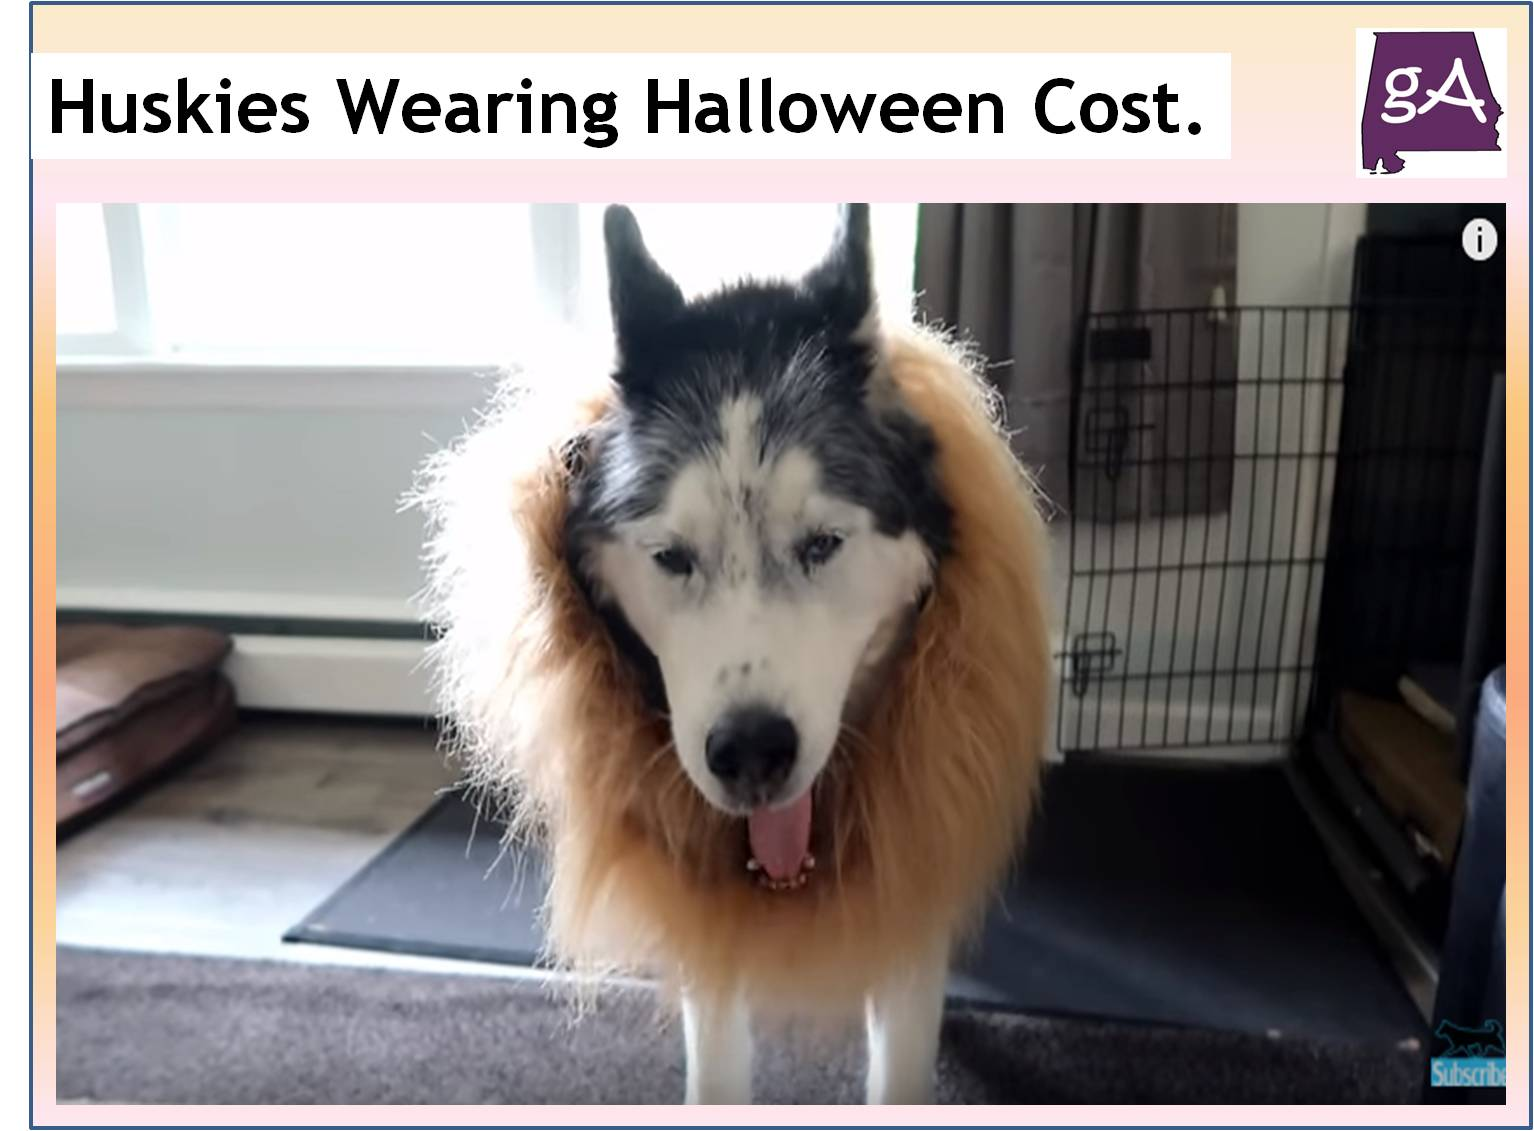 channel gone to the snow dogs has made this a yearly tradition by getting their siberian huskies shelby oakley and memphis to wear halloween costumes